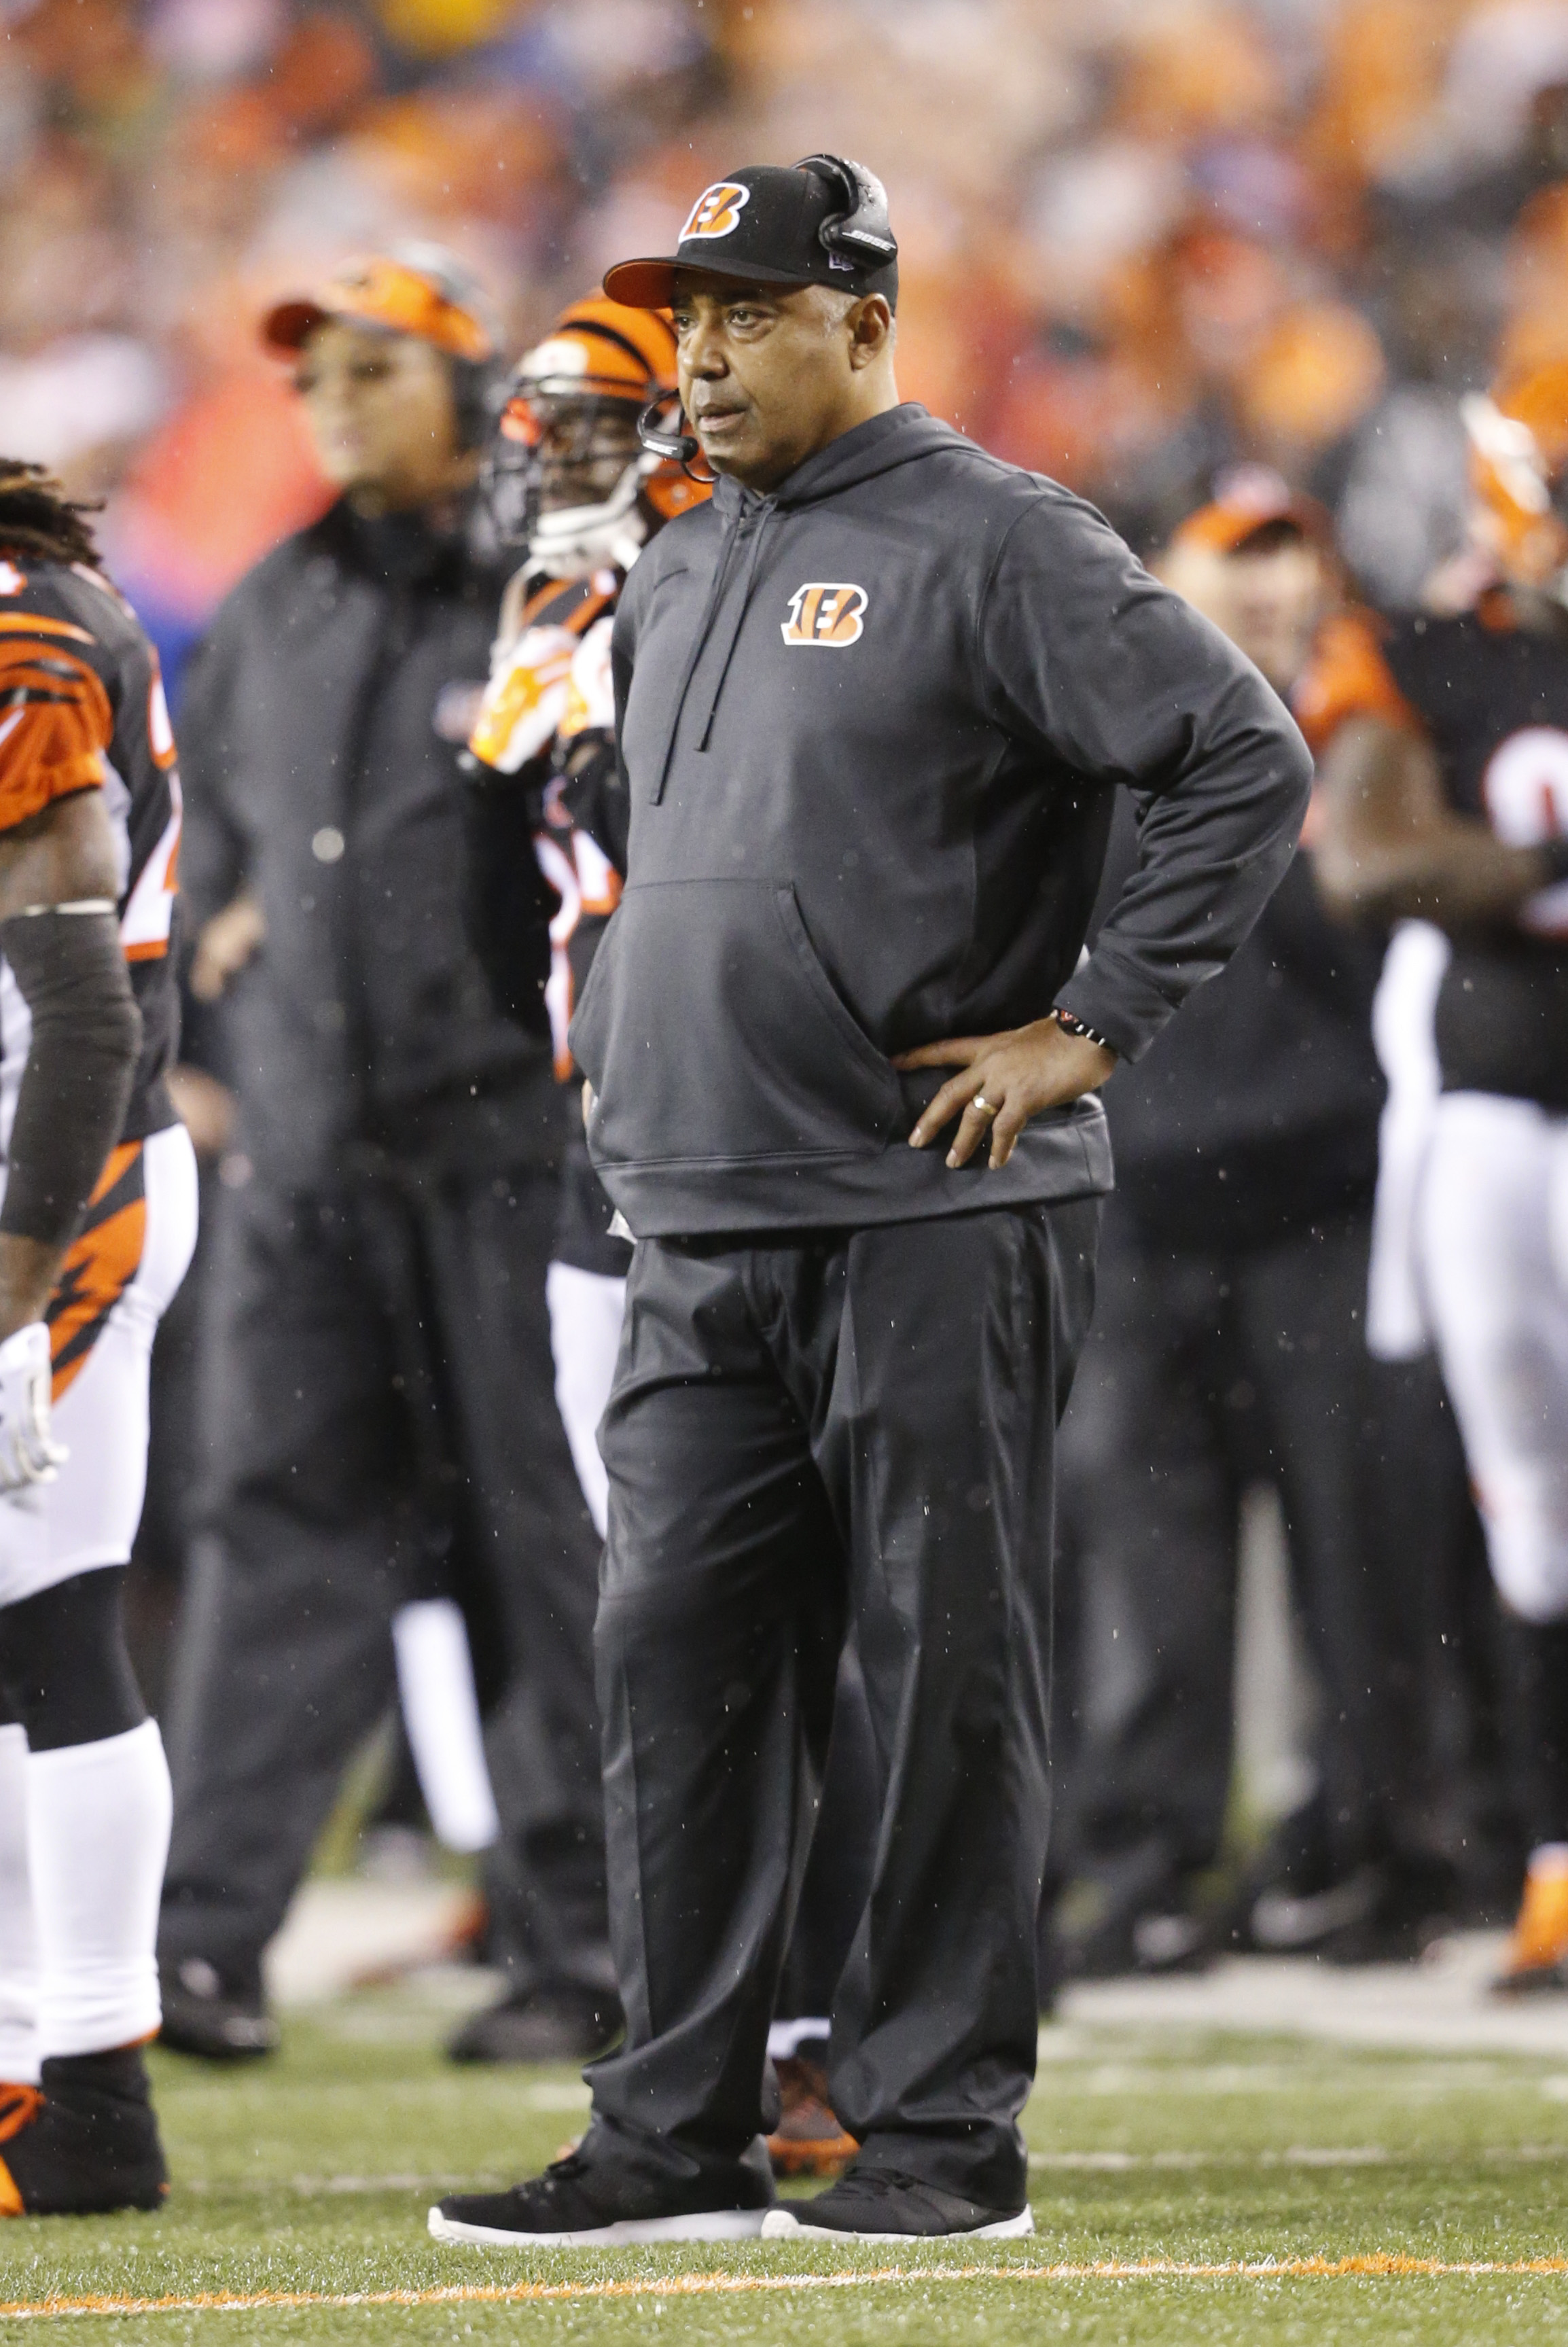 Cincinnati Bengals head coach Marvin Lewis watches during the second half of an NFL wild-card playoff football game against the Pittsburgh Steelers, Saturday, Jan. 9, 2016, in Cincinnati. (AP Photo/Frank Victores)